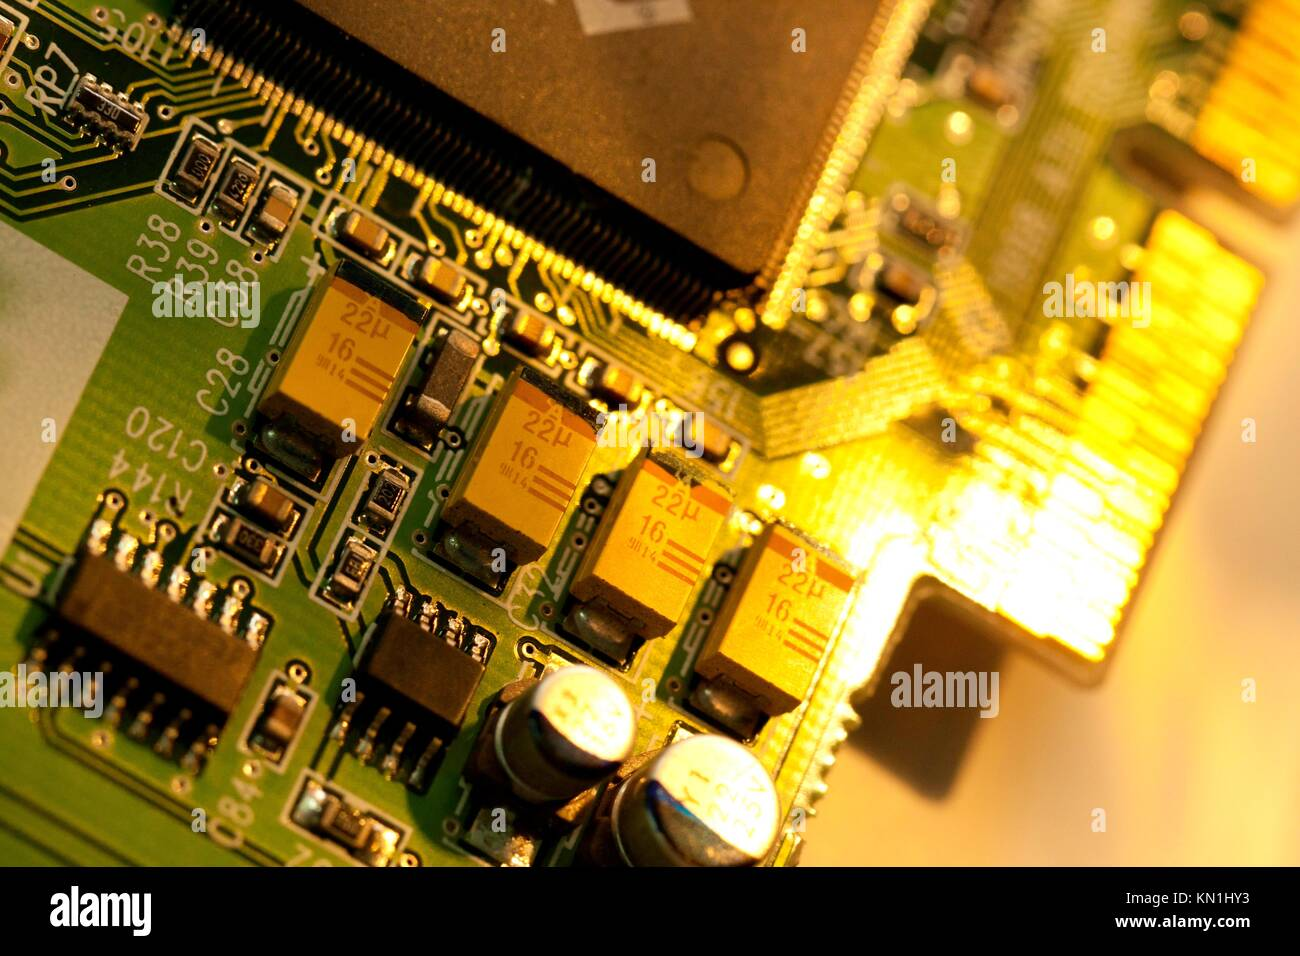 Integrated Circuit Computer Chips Stock Photos Detail Of A Printed Board Royalty Free Image Close View With